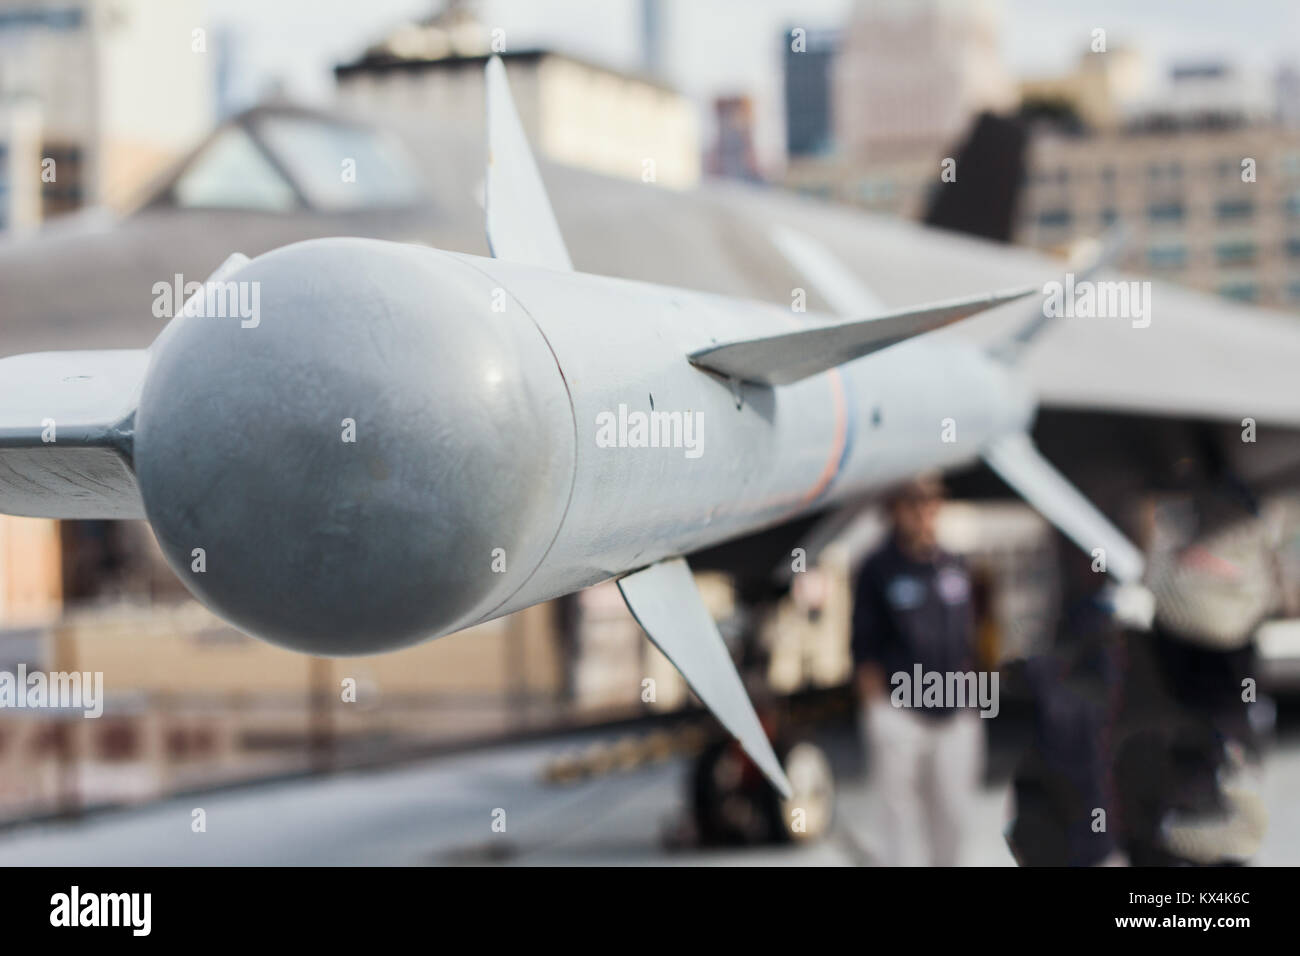 The missile air-air suspended under the wing of battle aircraft - Stock Image